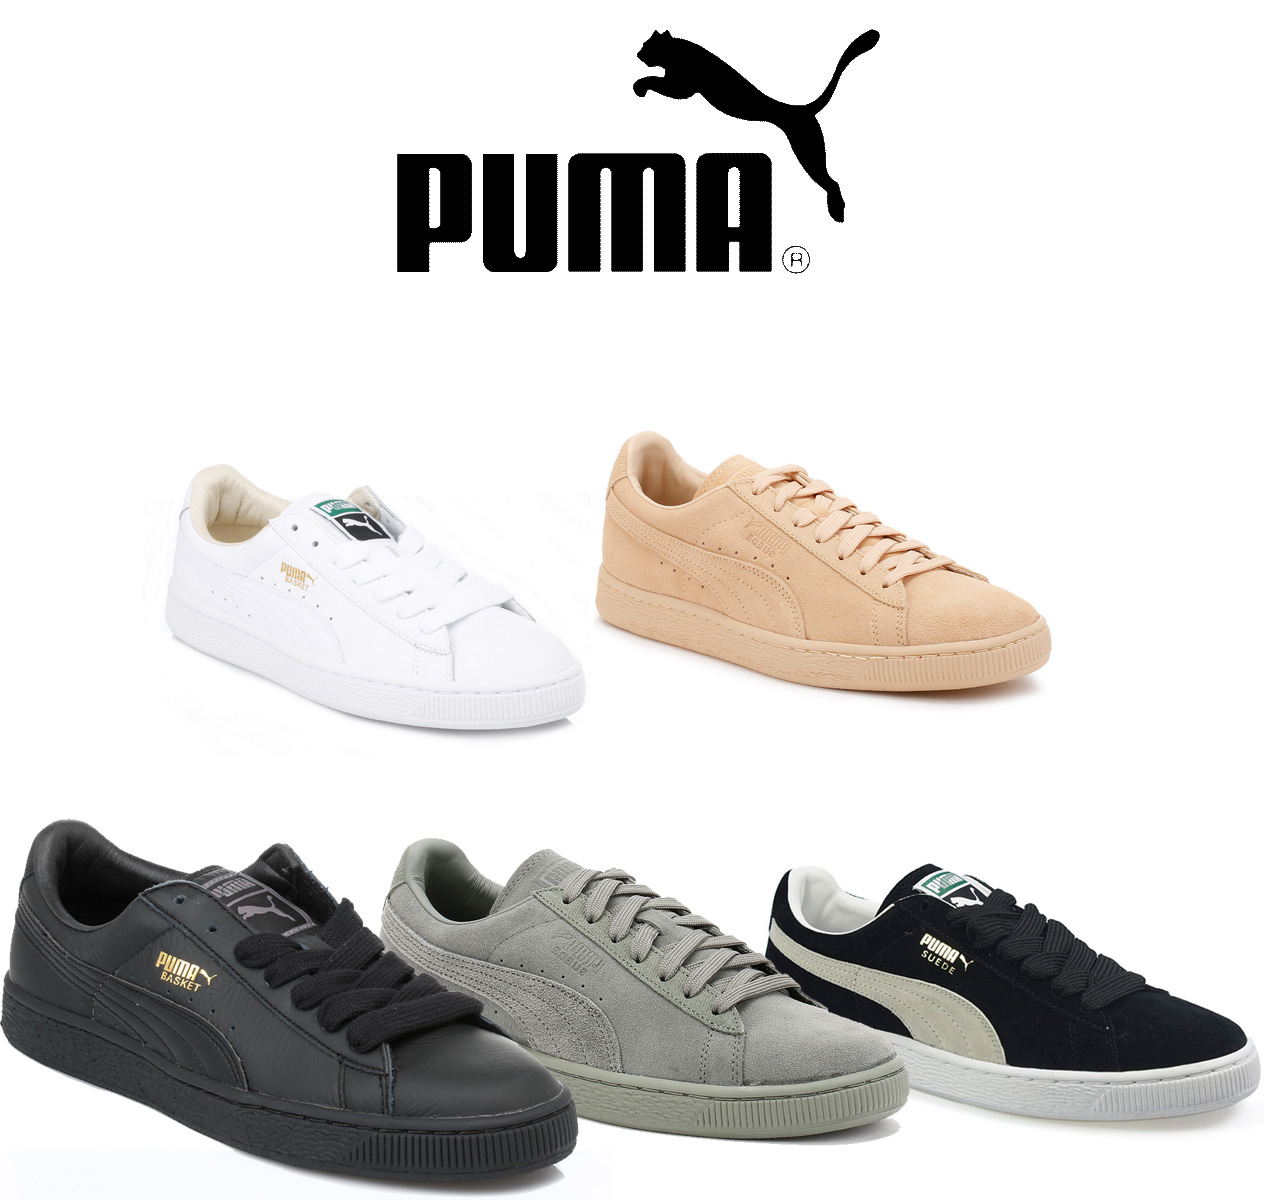 PUMA ORIGINALS CARO LOW MENS RETRO SUEDE LEATHER CASUAL LACE UP TRAINERS RRP £65